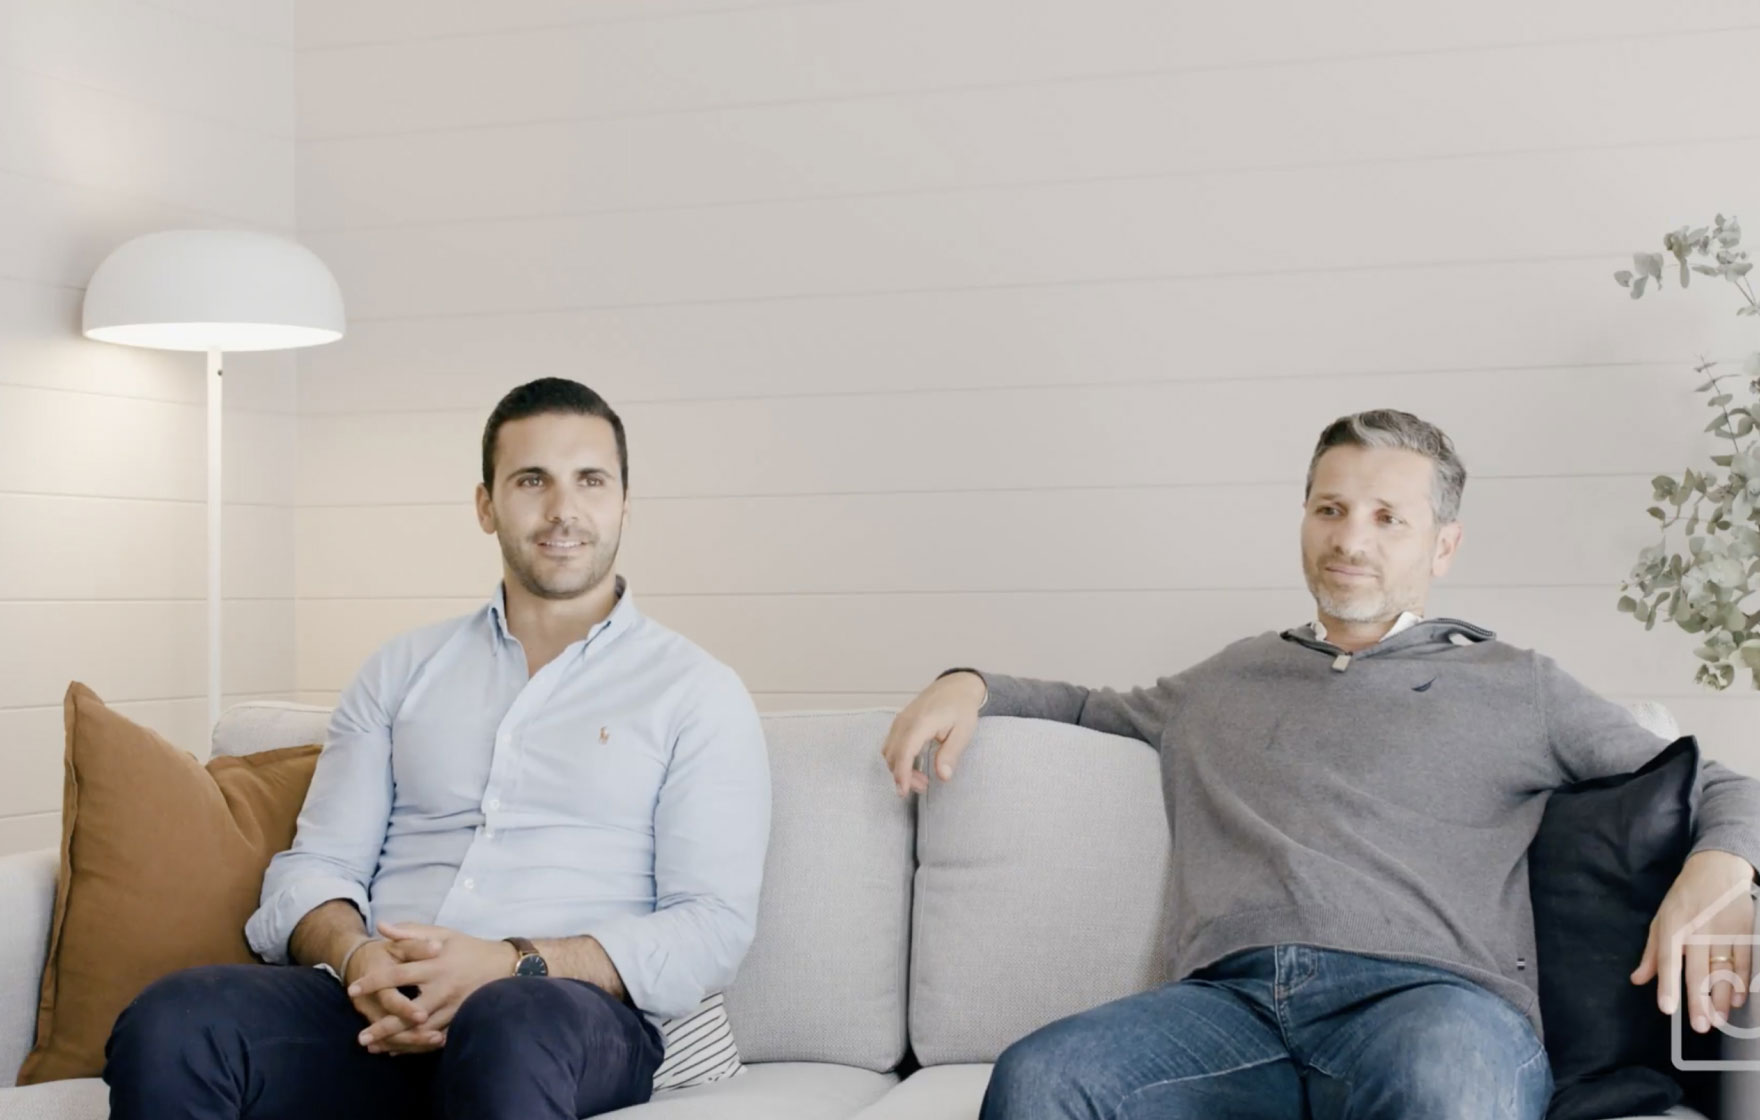 Co-founders Antony and Sam sitting on a couch telling a story